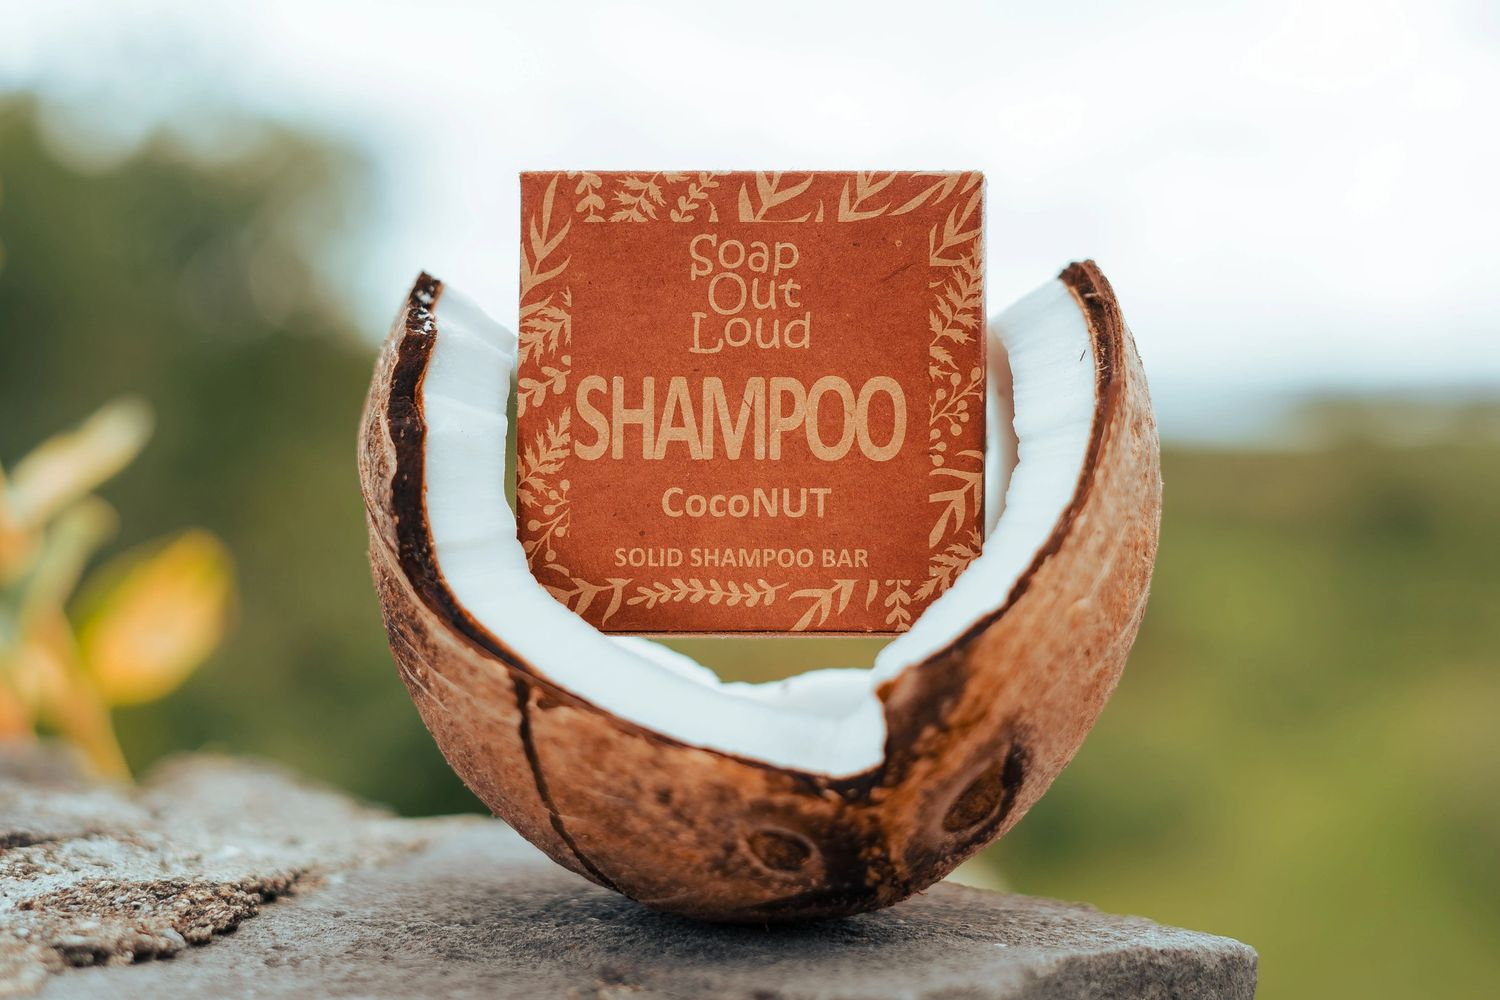 Soap Out Loud Ireland Conditioner Shampoo Deodorant